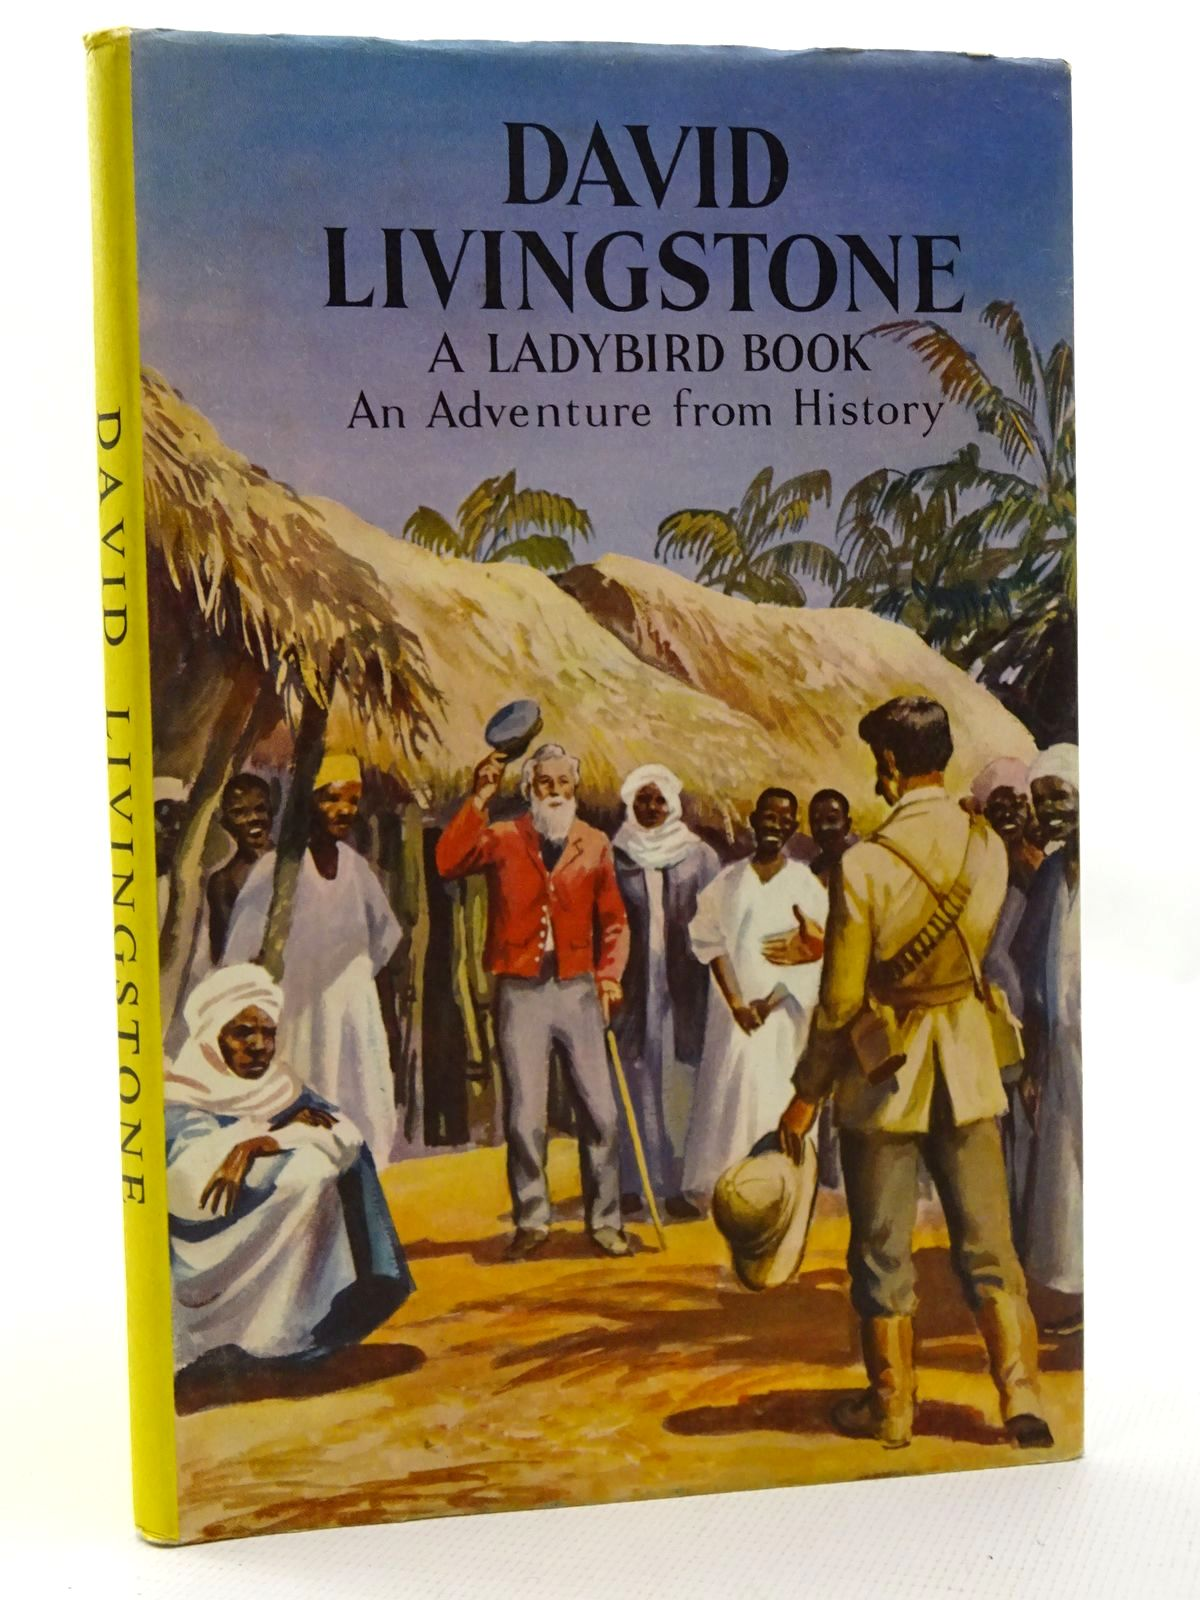 Photo of DAVID LIVINGSTONE written by Peach, L. Du Garde illustrated by Kenney, John published by Wills & Hepworth Ltd. (STOCK CODE: 2124236)  for sale by Stella & Rose's Books